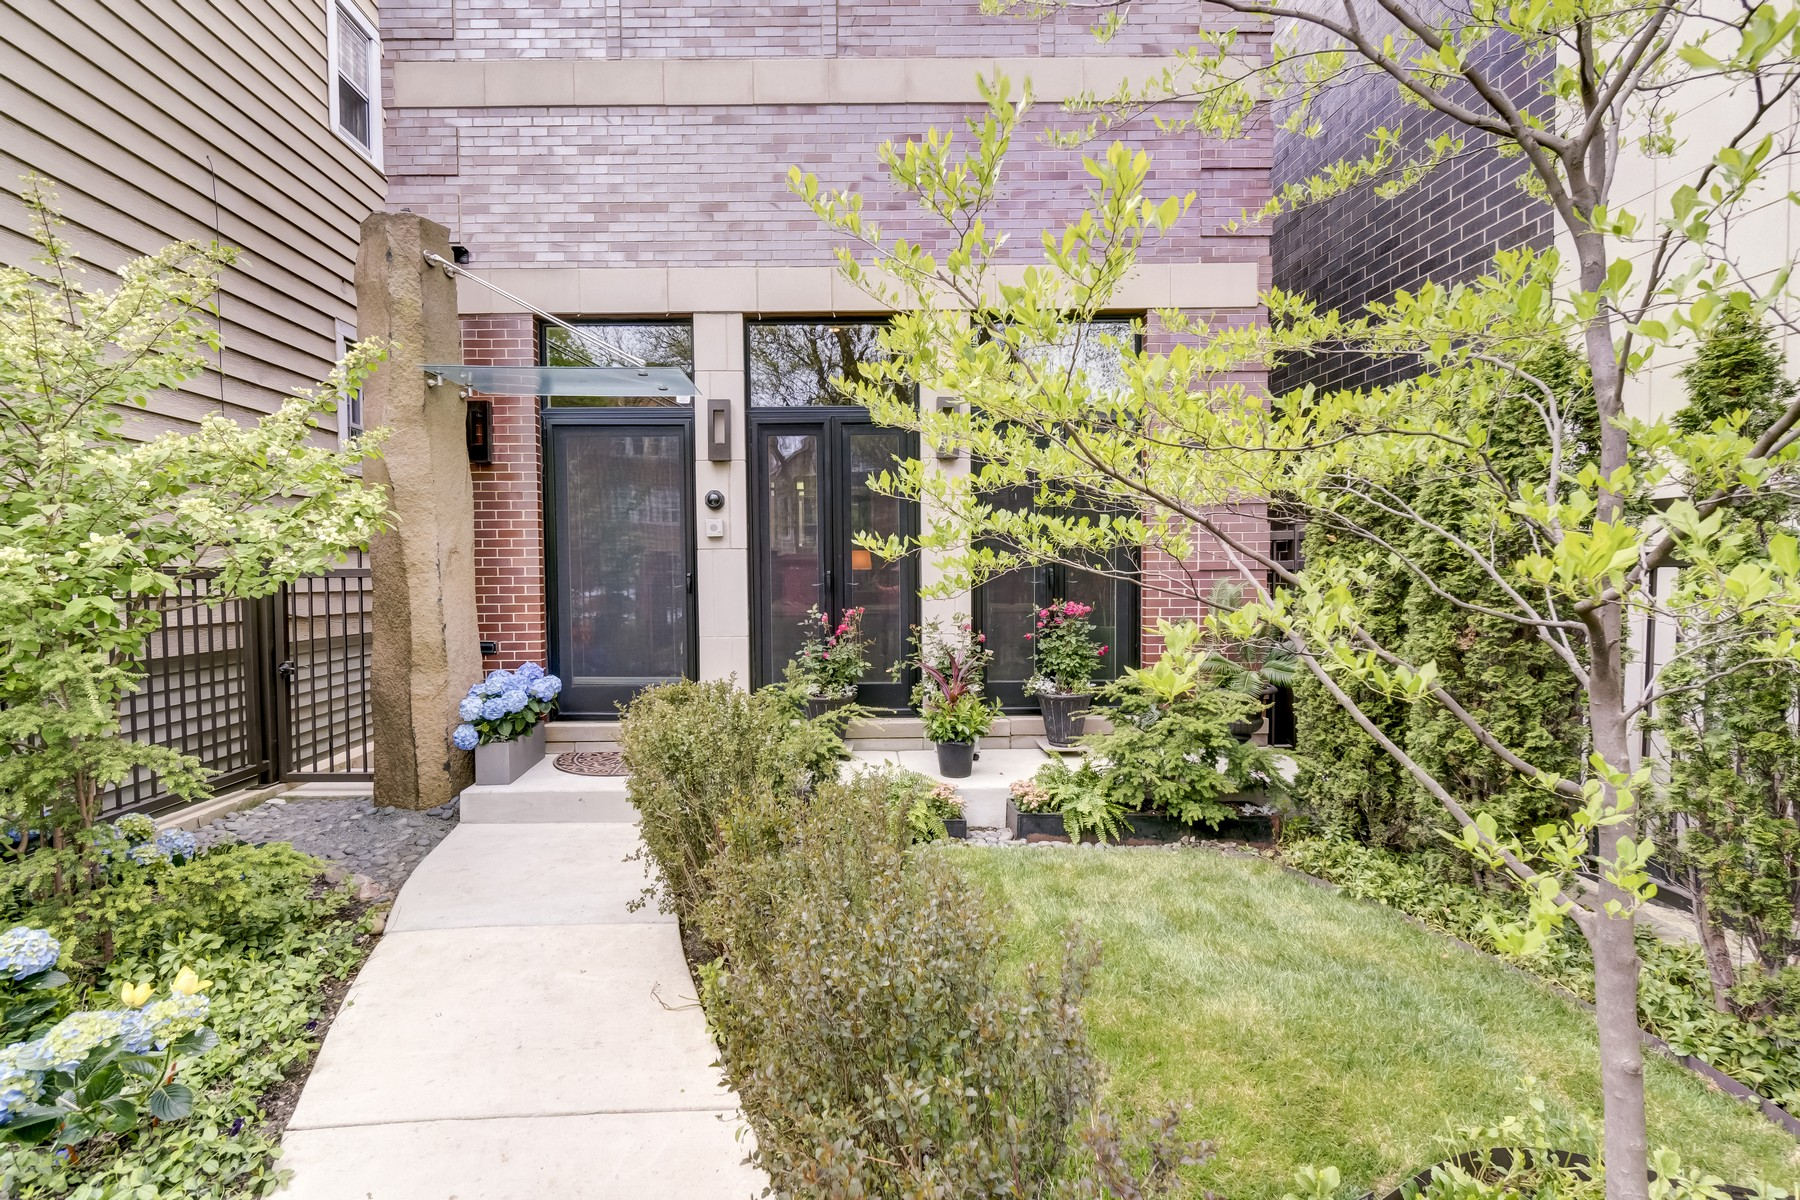 獨棟家庭住宅 為 出售 在 Stunning Brick and Limestone Residence 2654 N Marshfield Avenue Chicago, 伊利諾斯州, 60614 美國